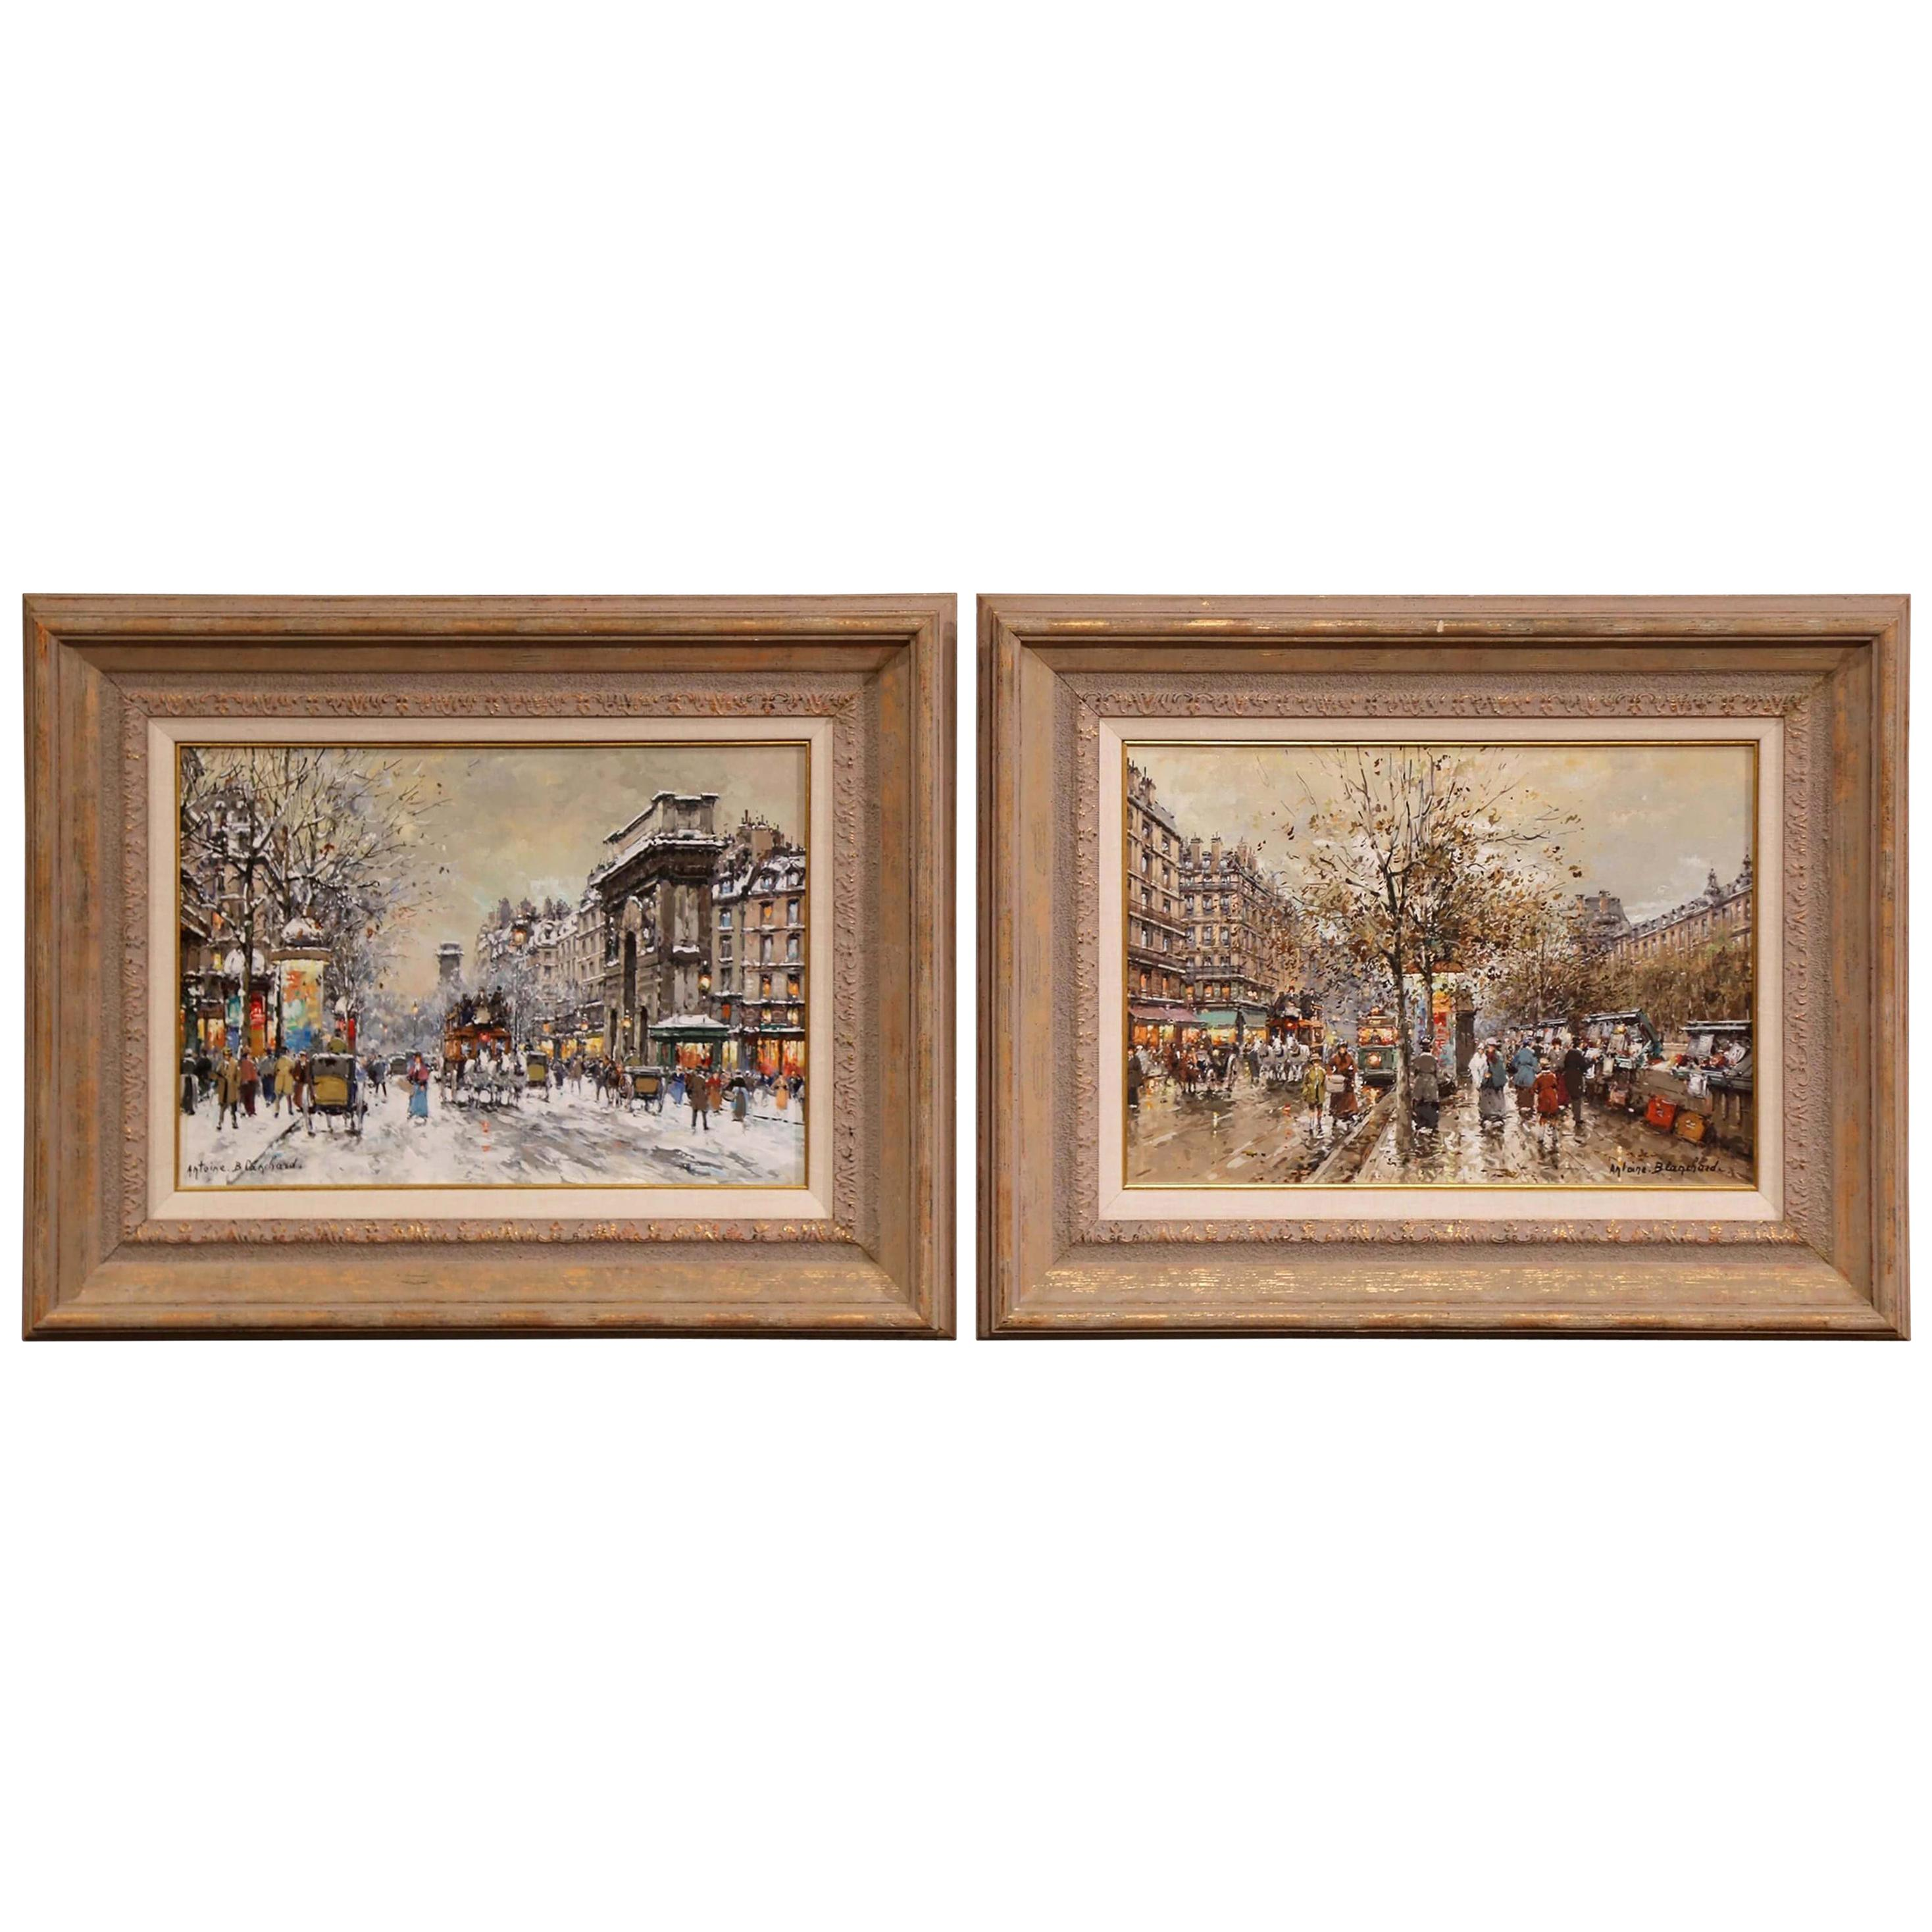 Pair of Framed Oil on Canvas Parisian Street Scenes Signed Antoine Blanchard